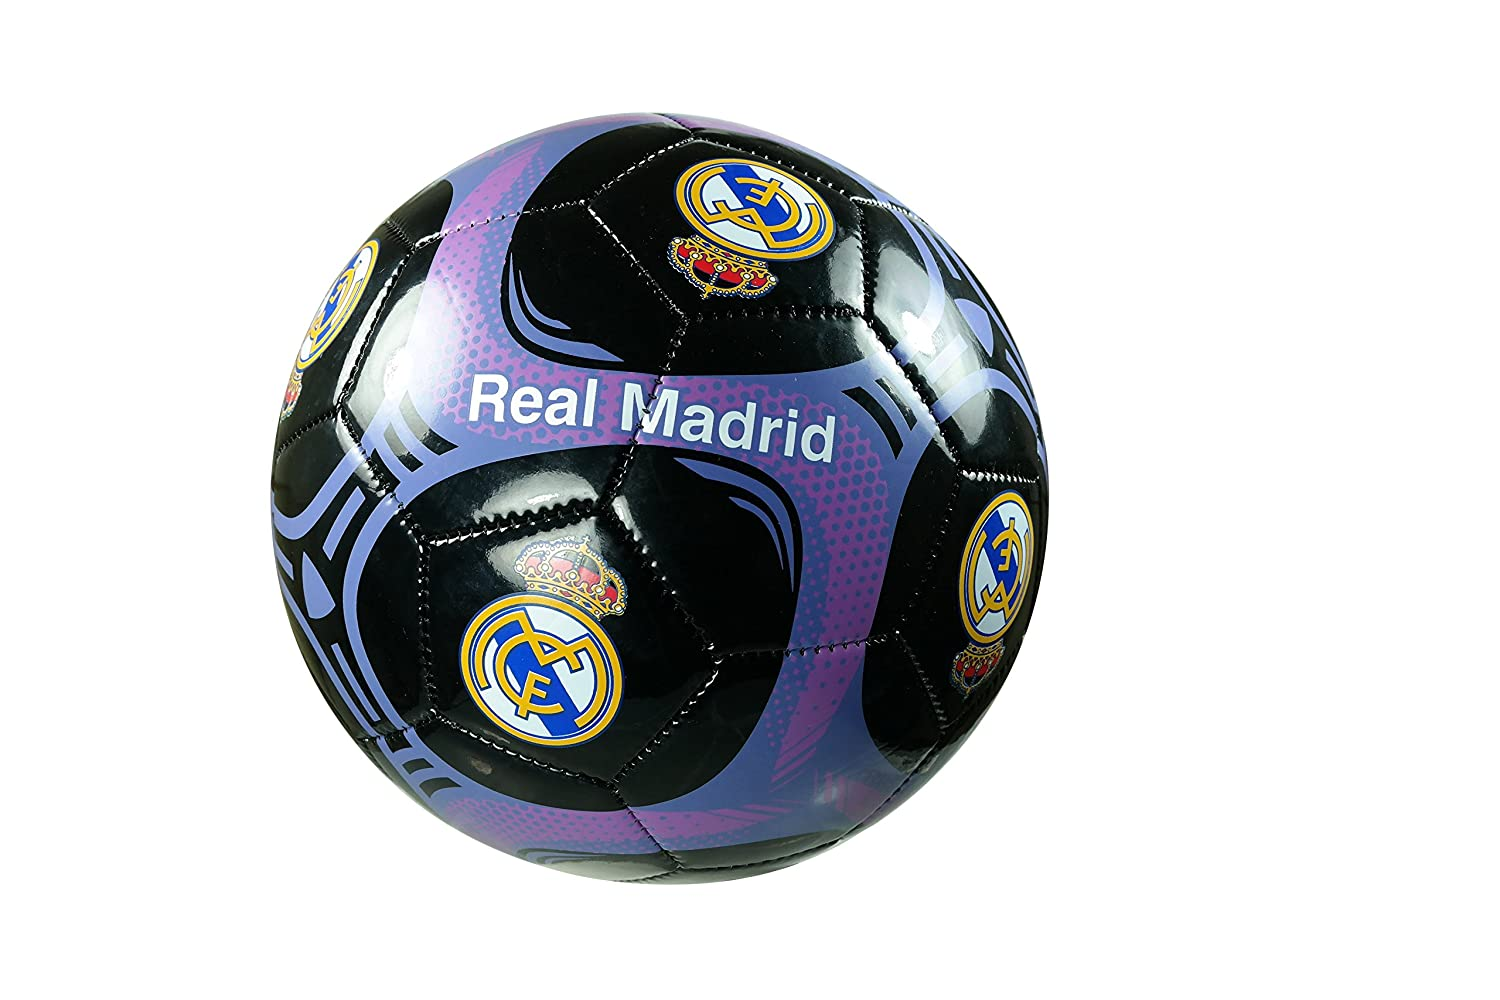 Real Madrid c.f. Authentic Official Licensedサッカーボールサイズ5 B076V3DHT75